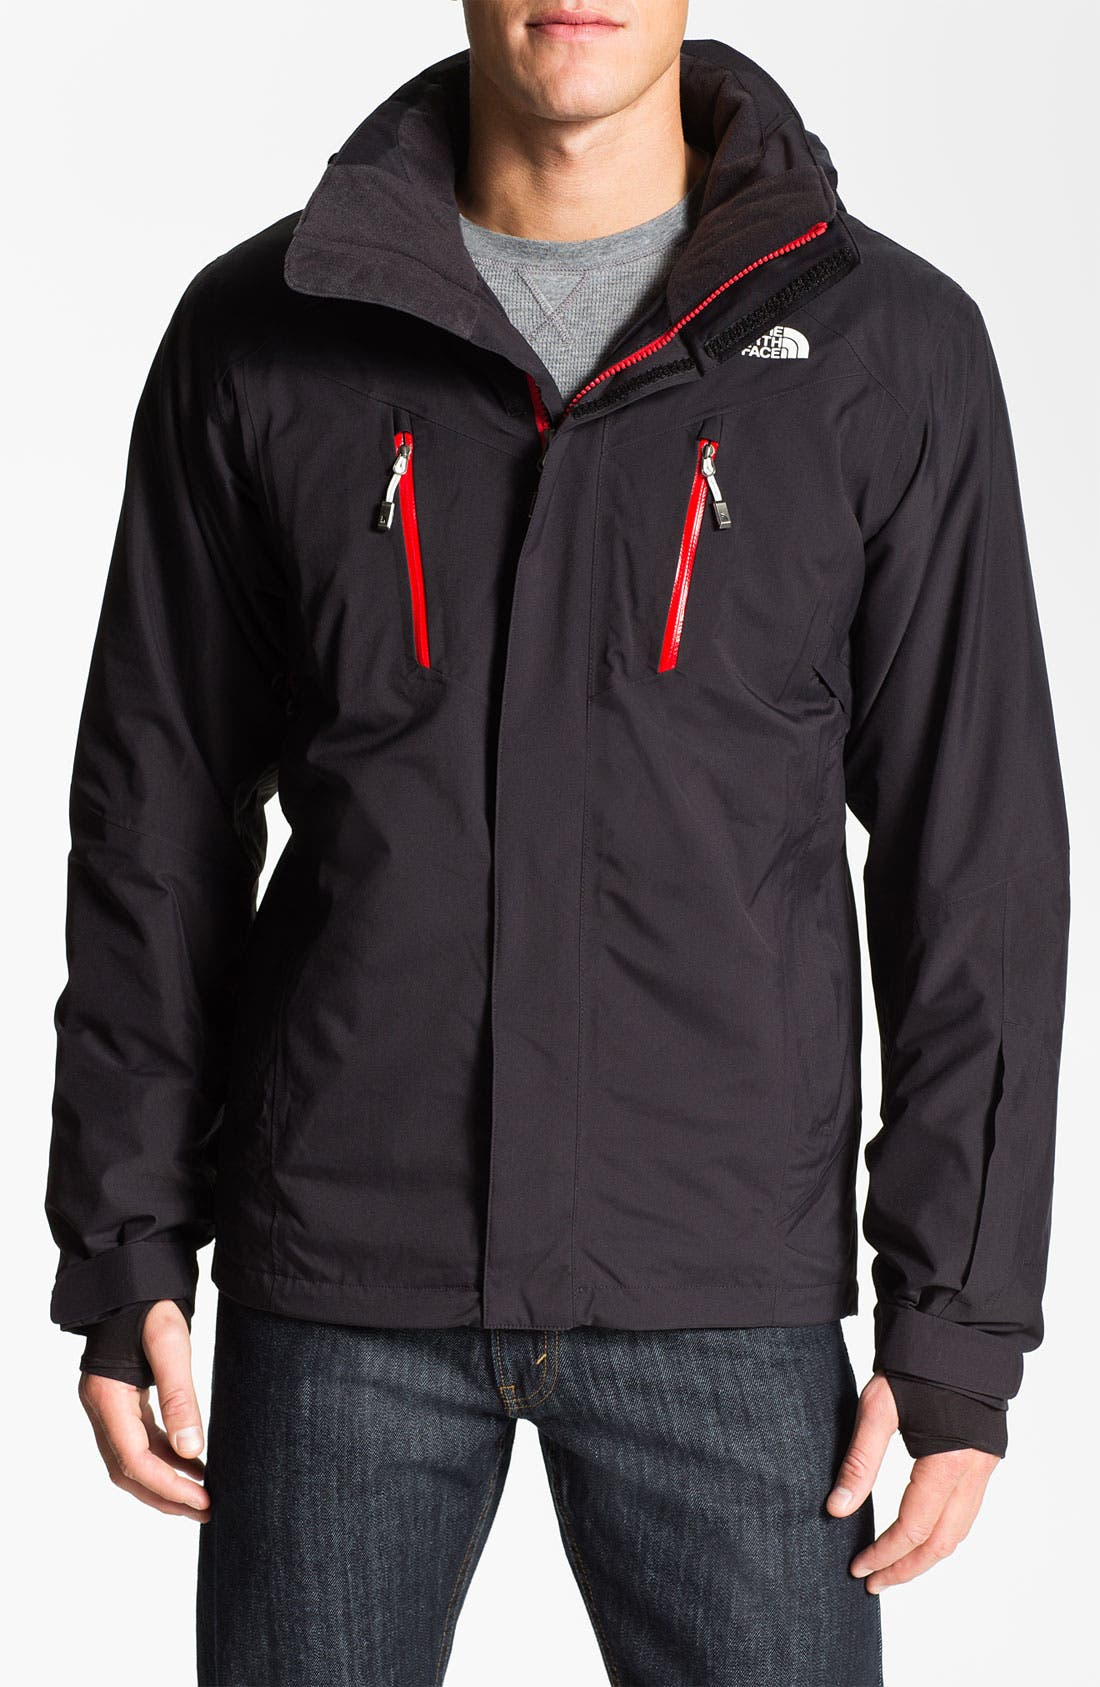 Main Image - The North Face 'Bansko' Jacket